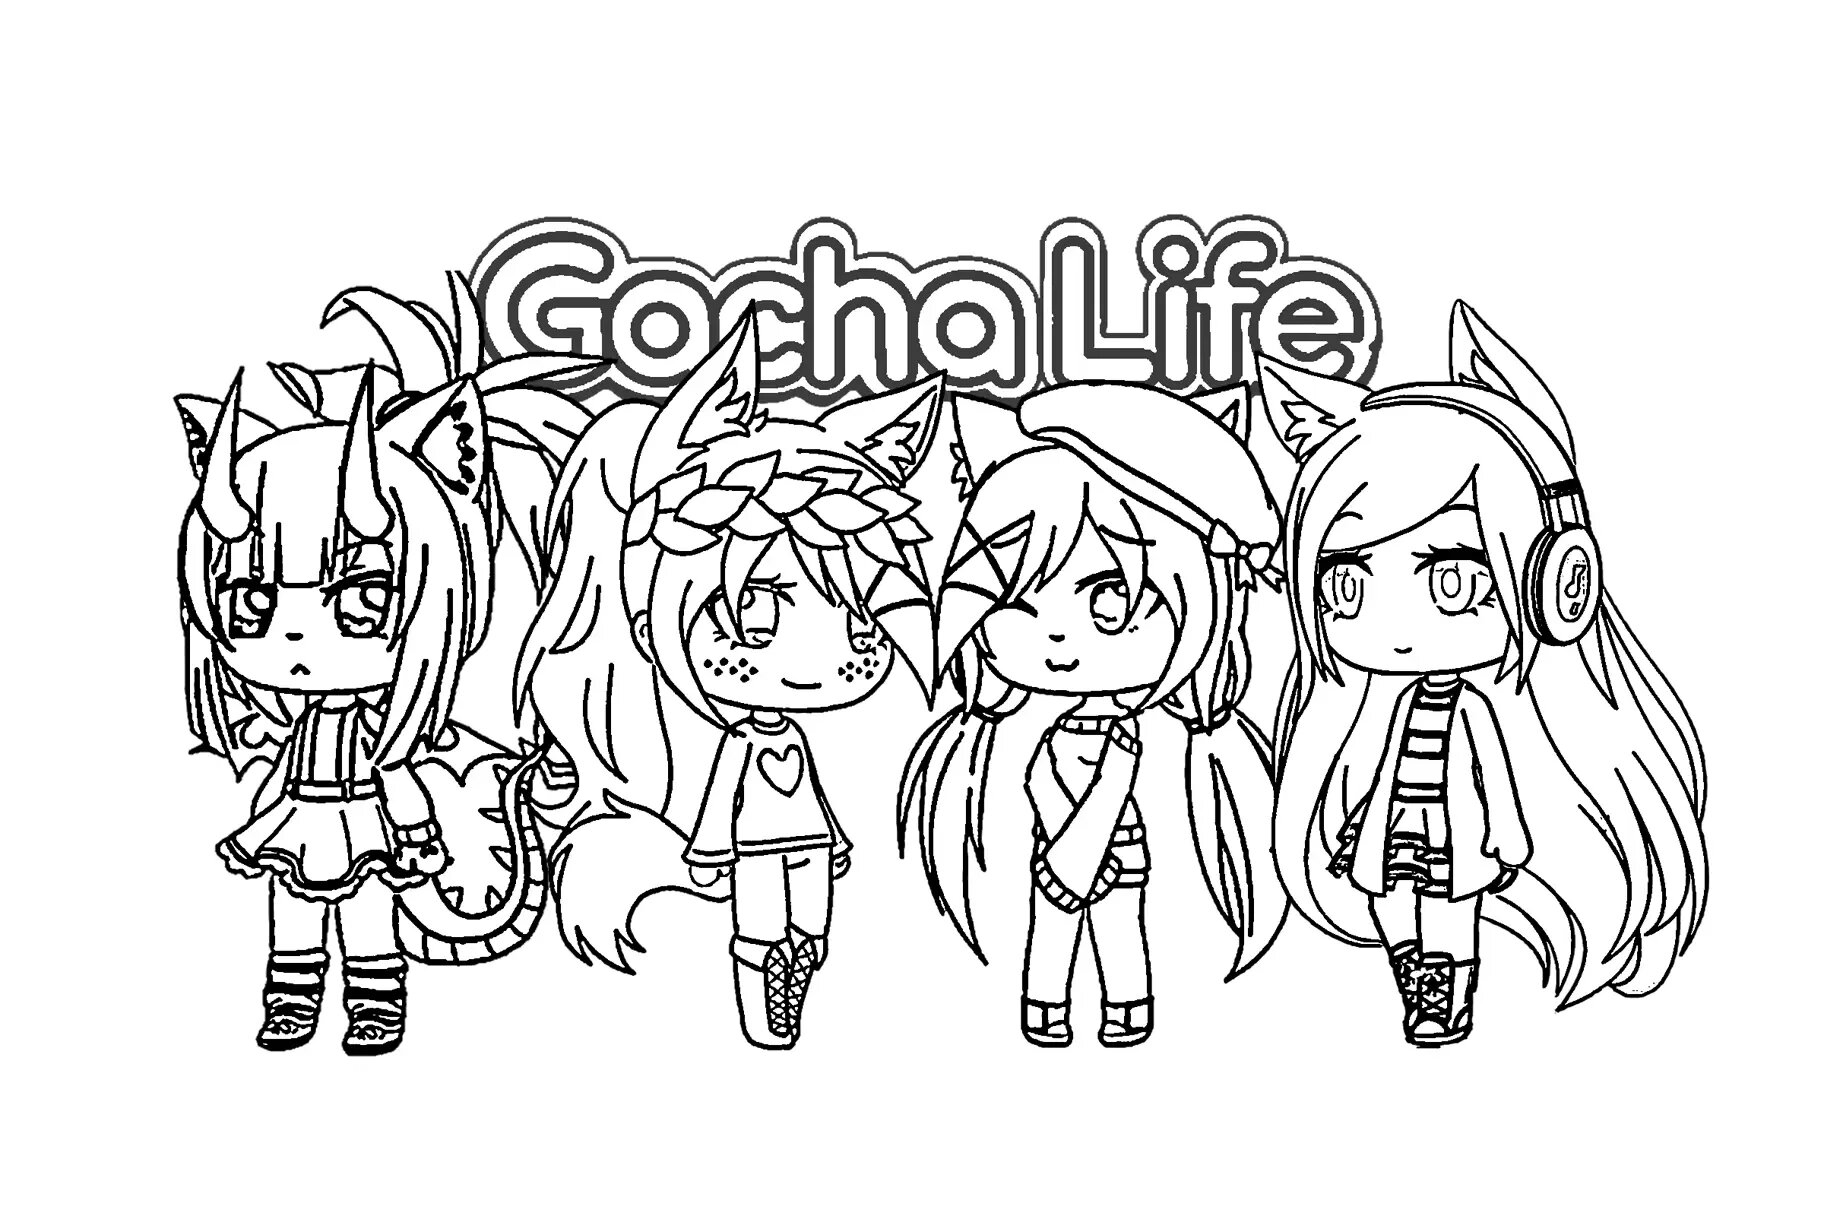 Four Girls in Gacha Life Coloring Page